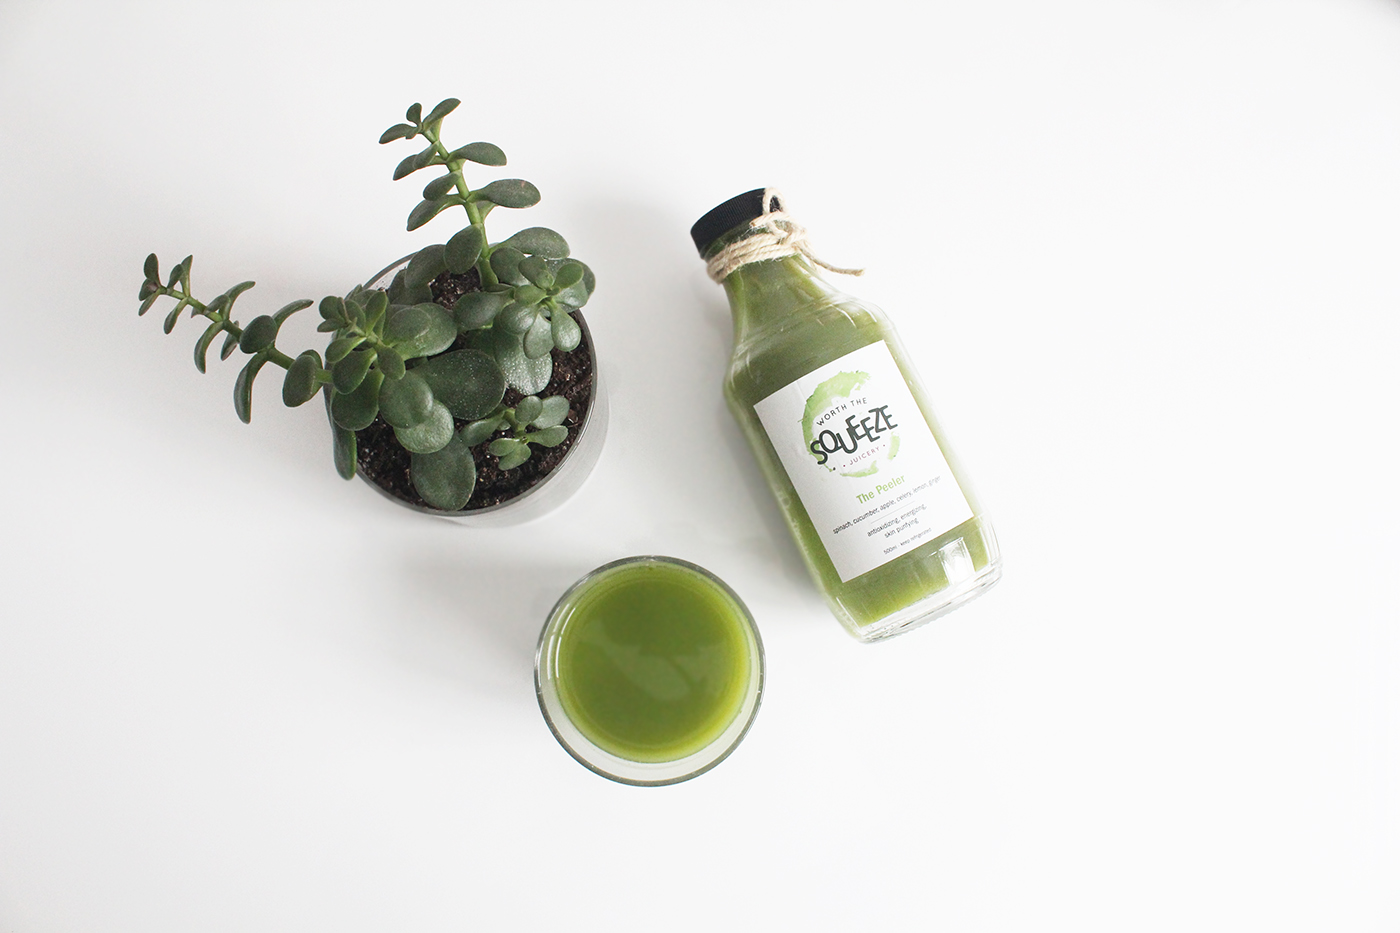 Shop Local: The Juice Craze (Worth the Squeeze)